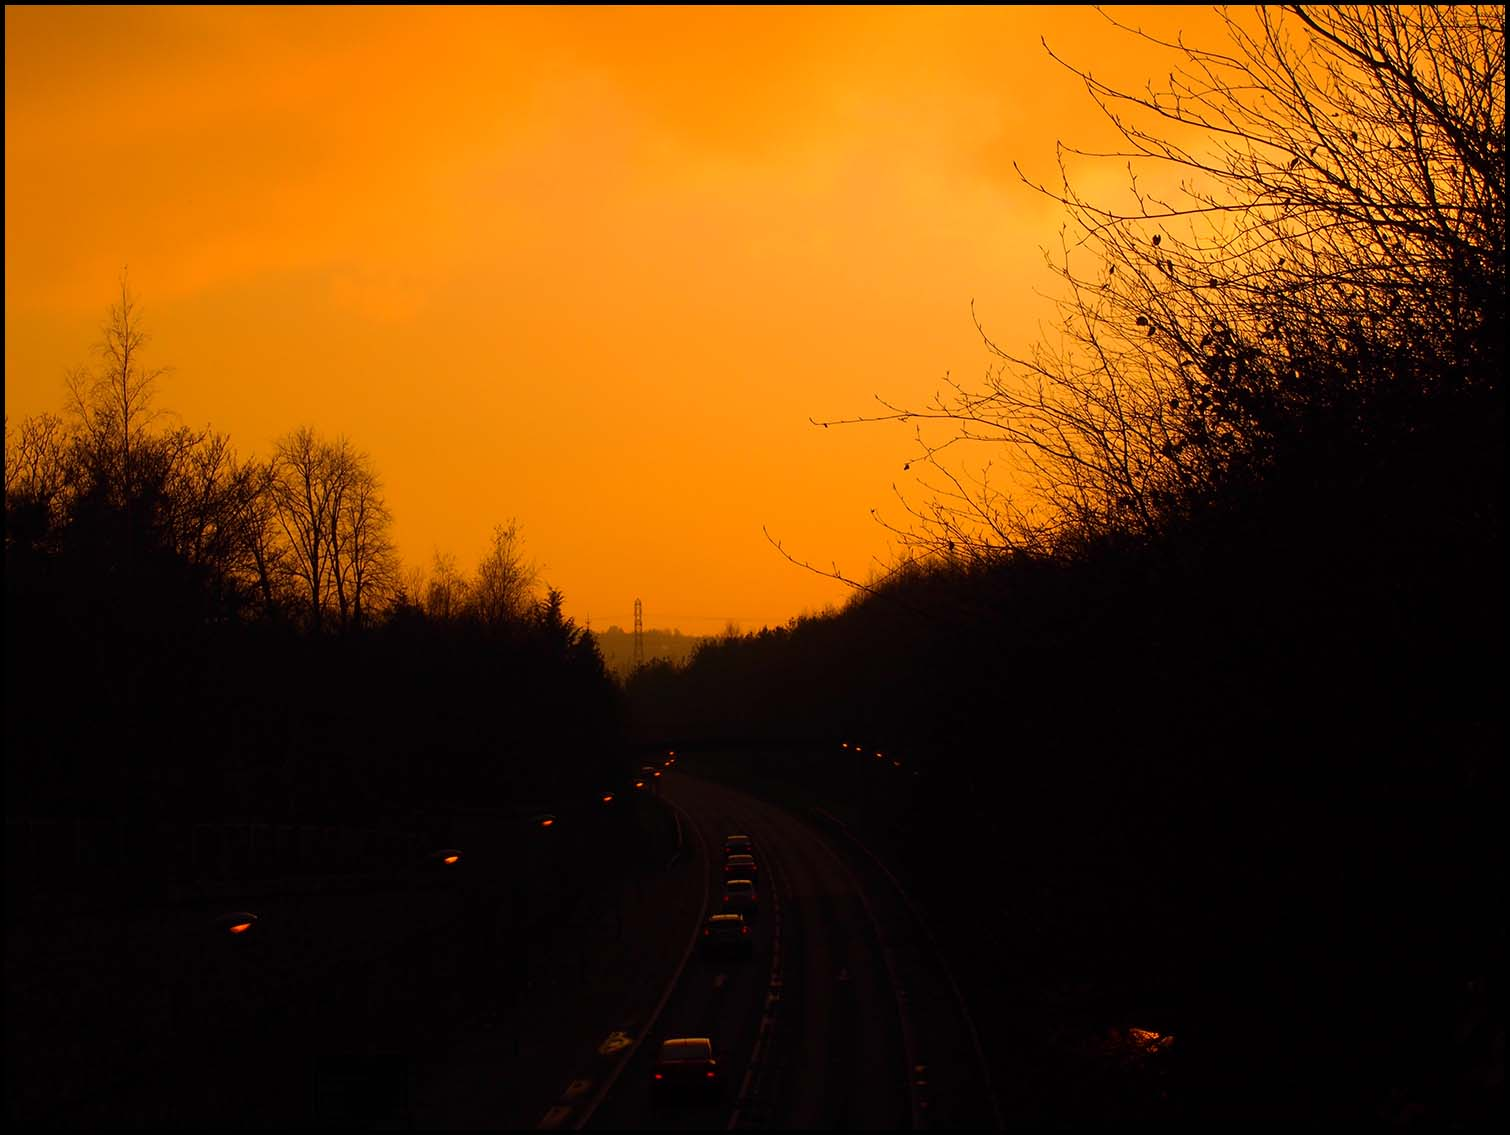 Sunset from the motorway bridge